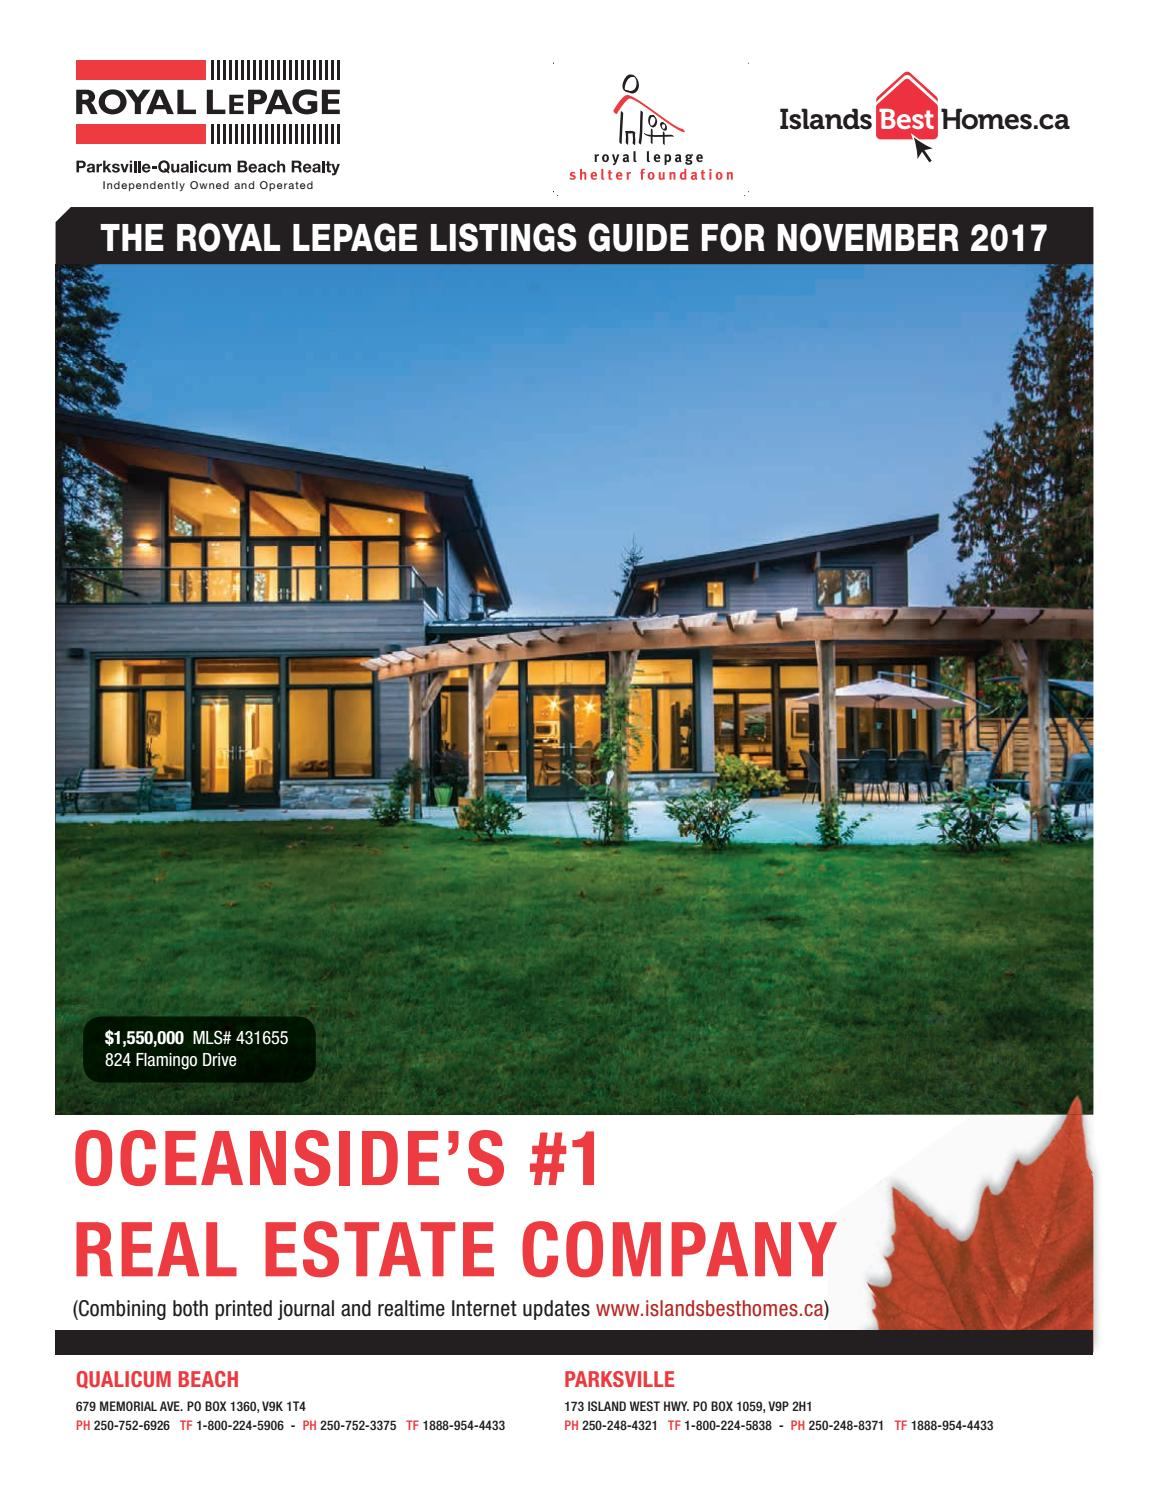 Islands Best Homes - Royal LePage Parksville-Qualicum Beach Realty ...